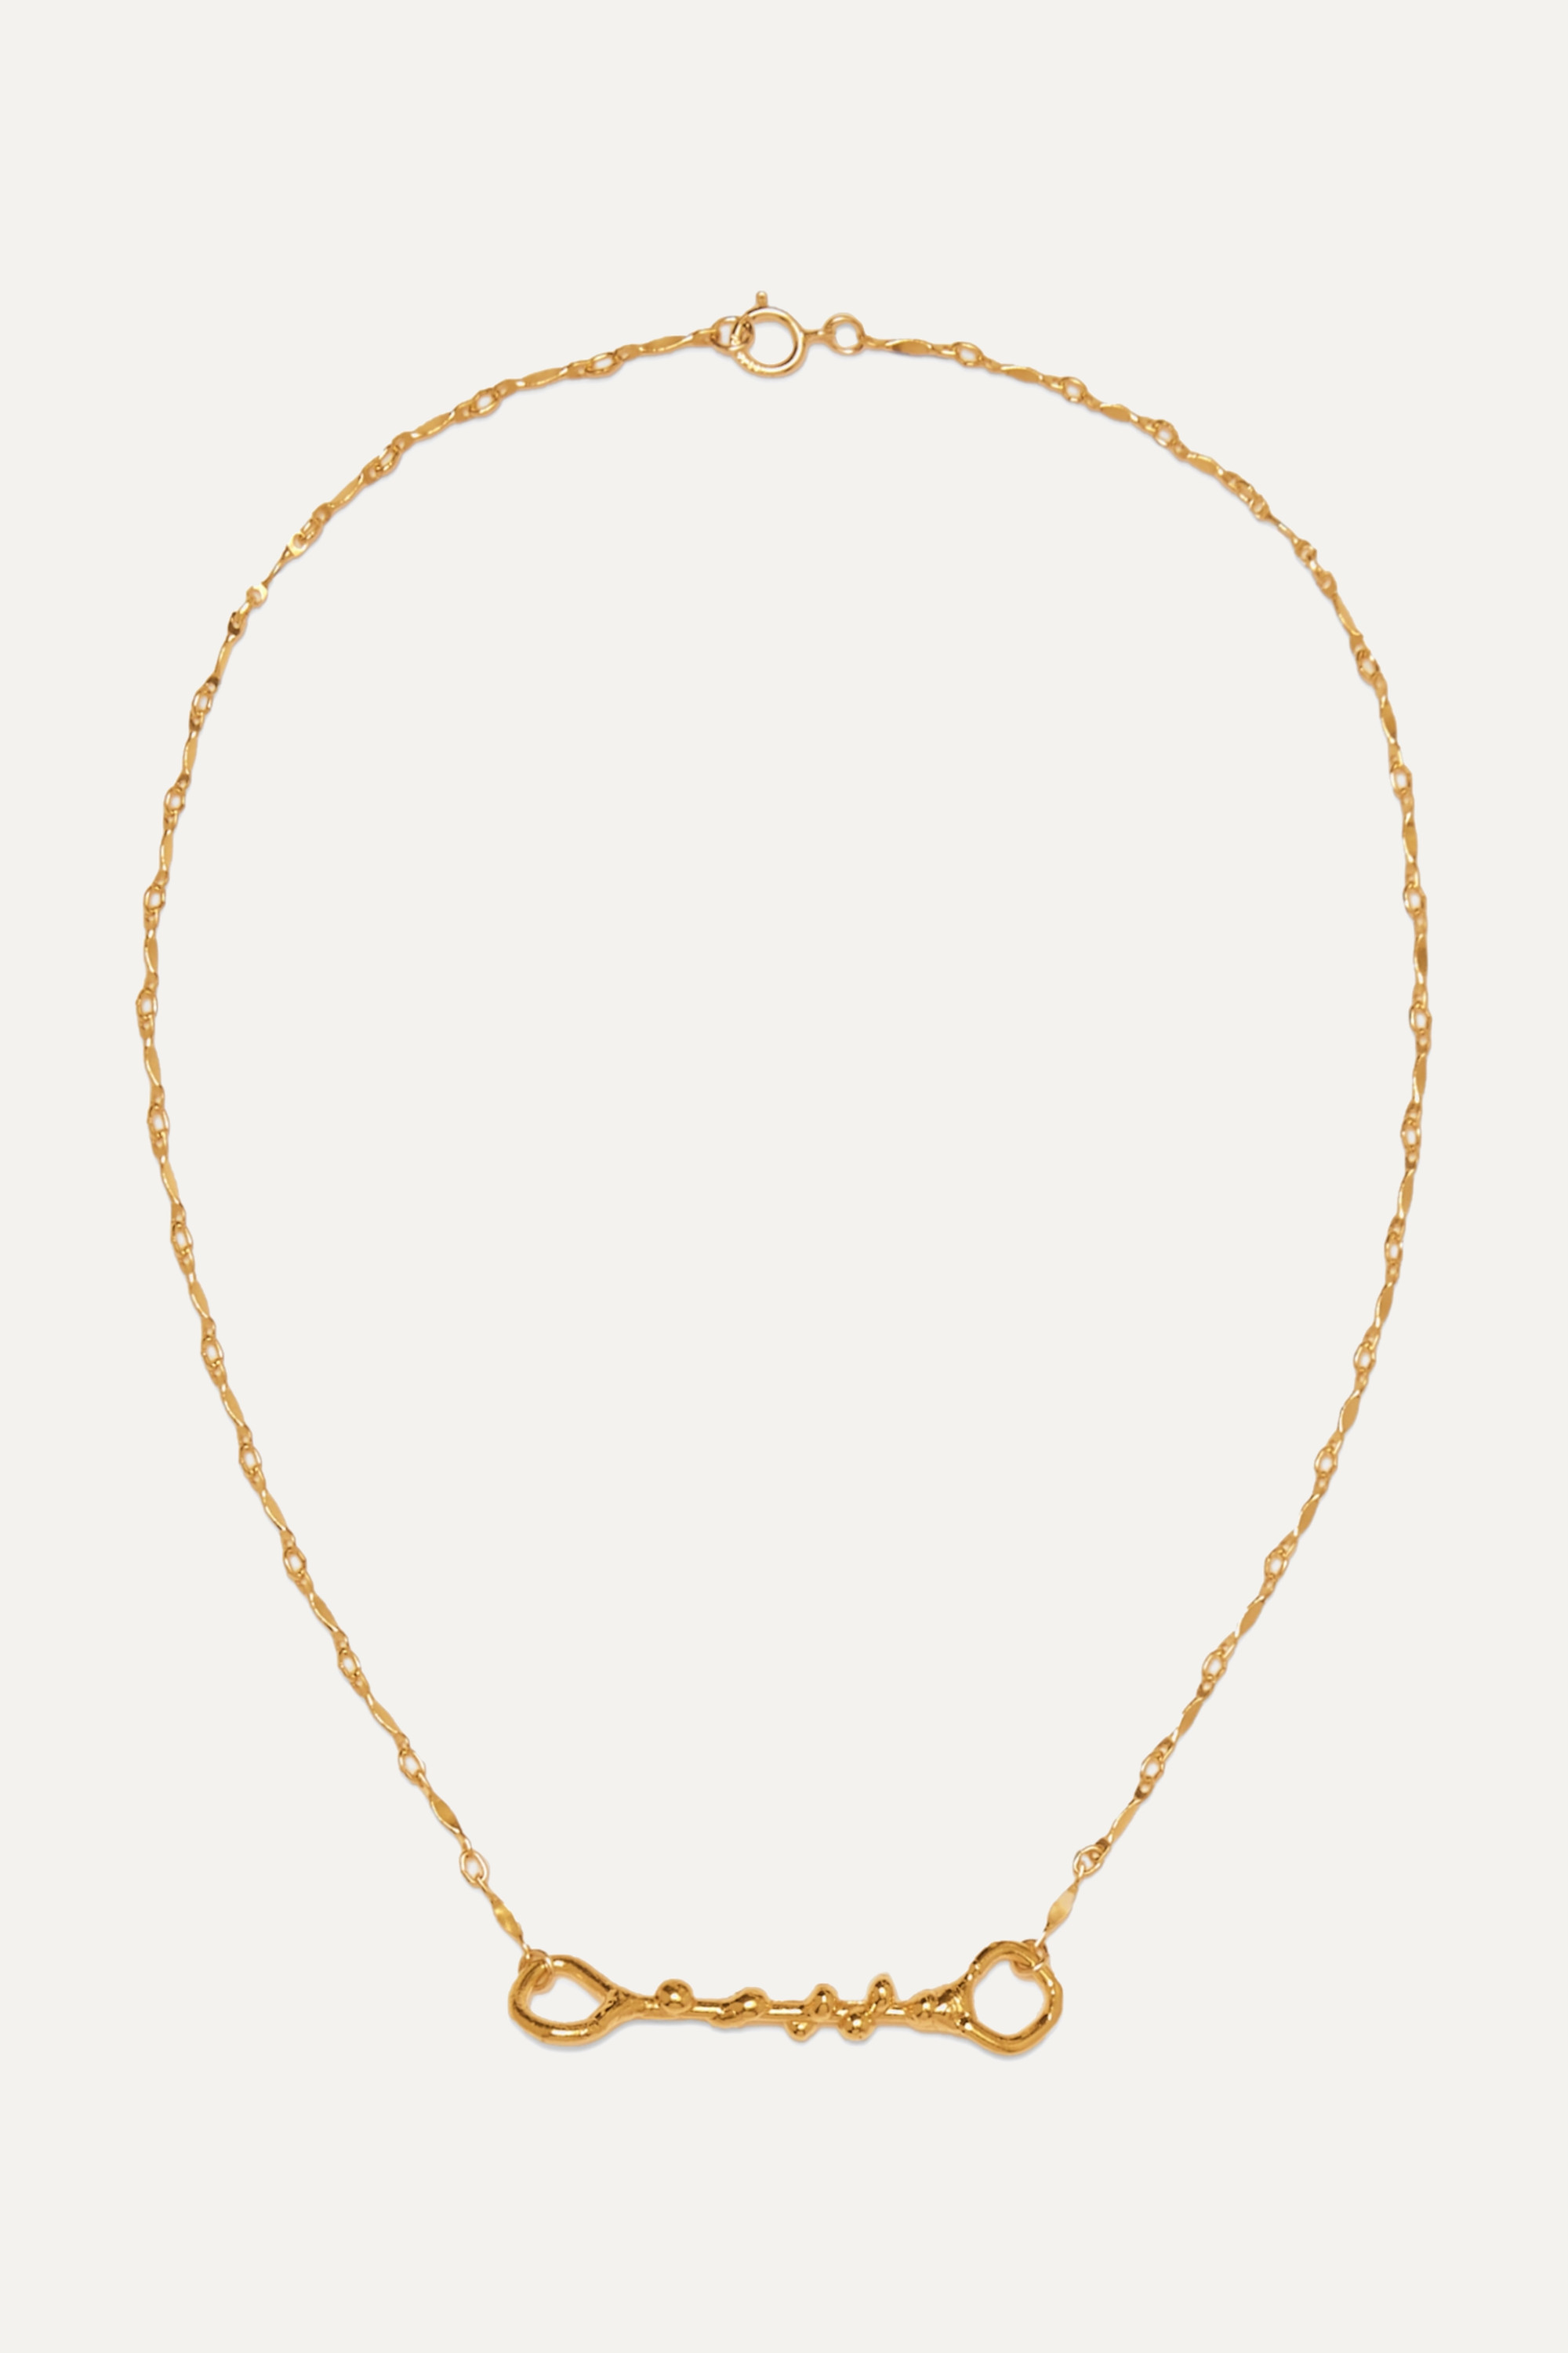 Alighieri The Spectre gold-plated necklace